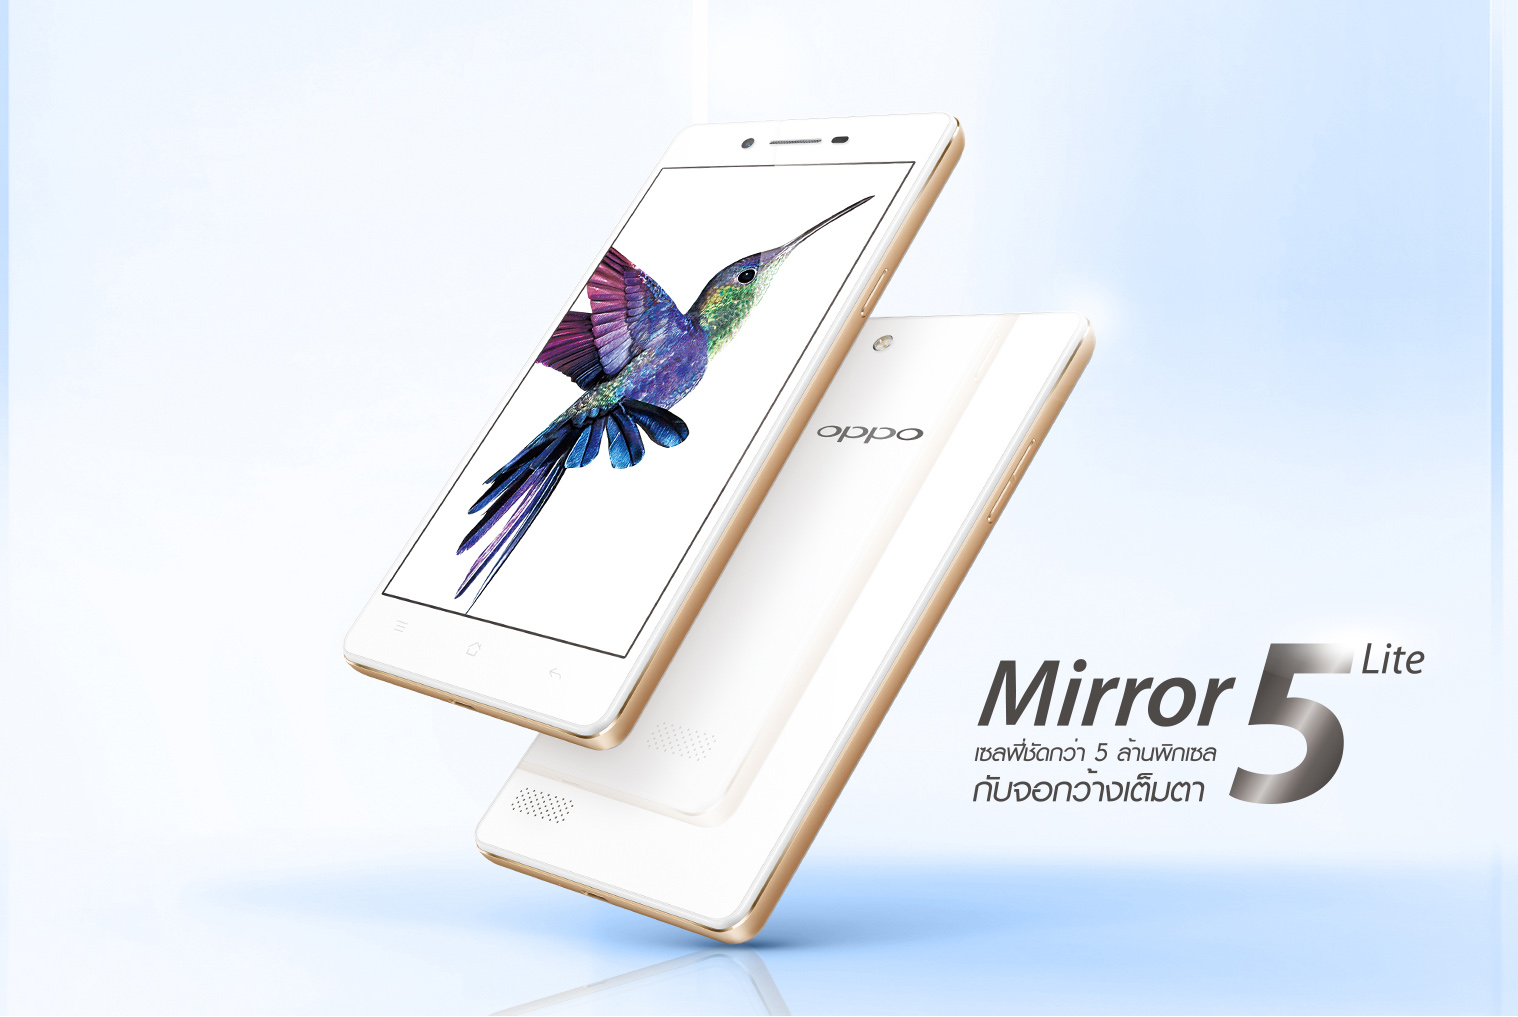 oppo mirror 5 lite launched in thailand for 168 times